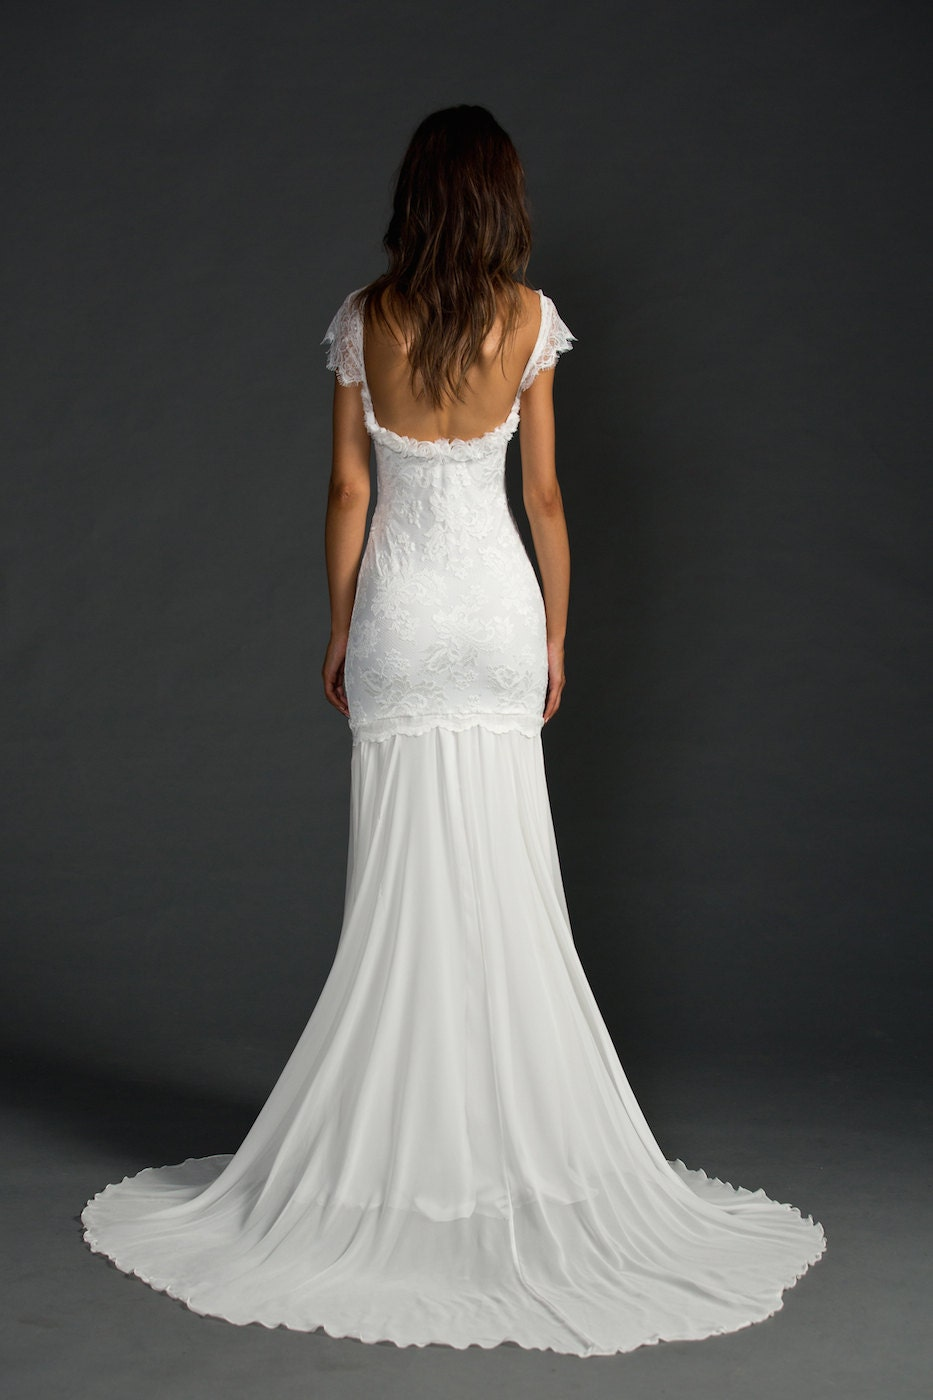 French Lace Low Back Wedding Dress Stunning Low Back Lace Wedding